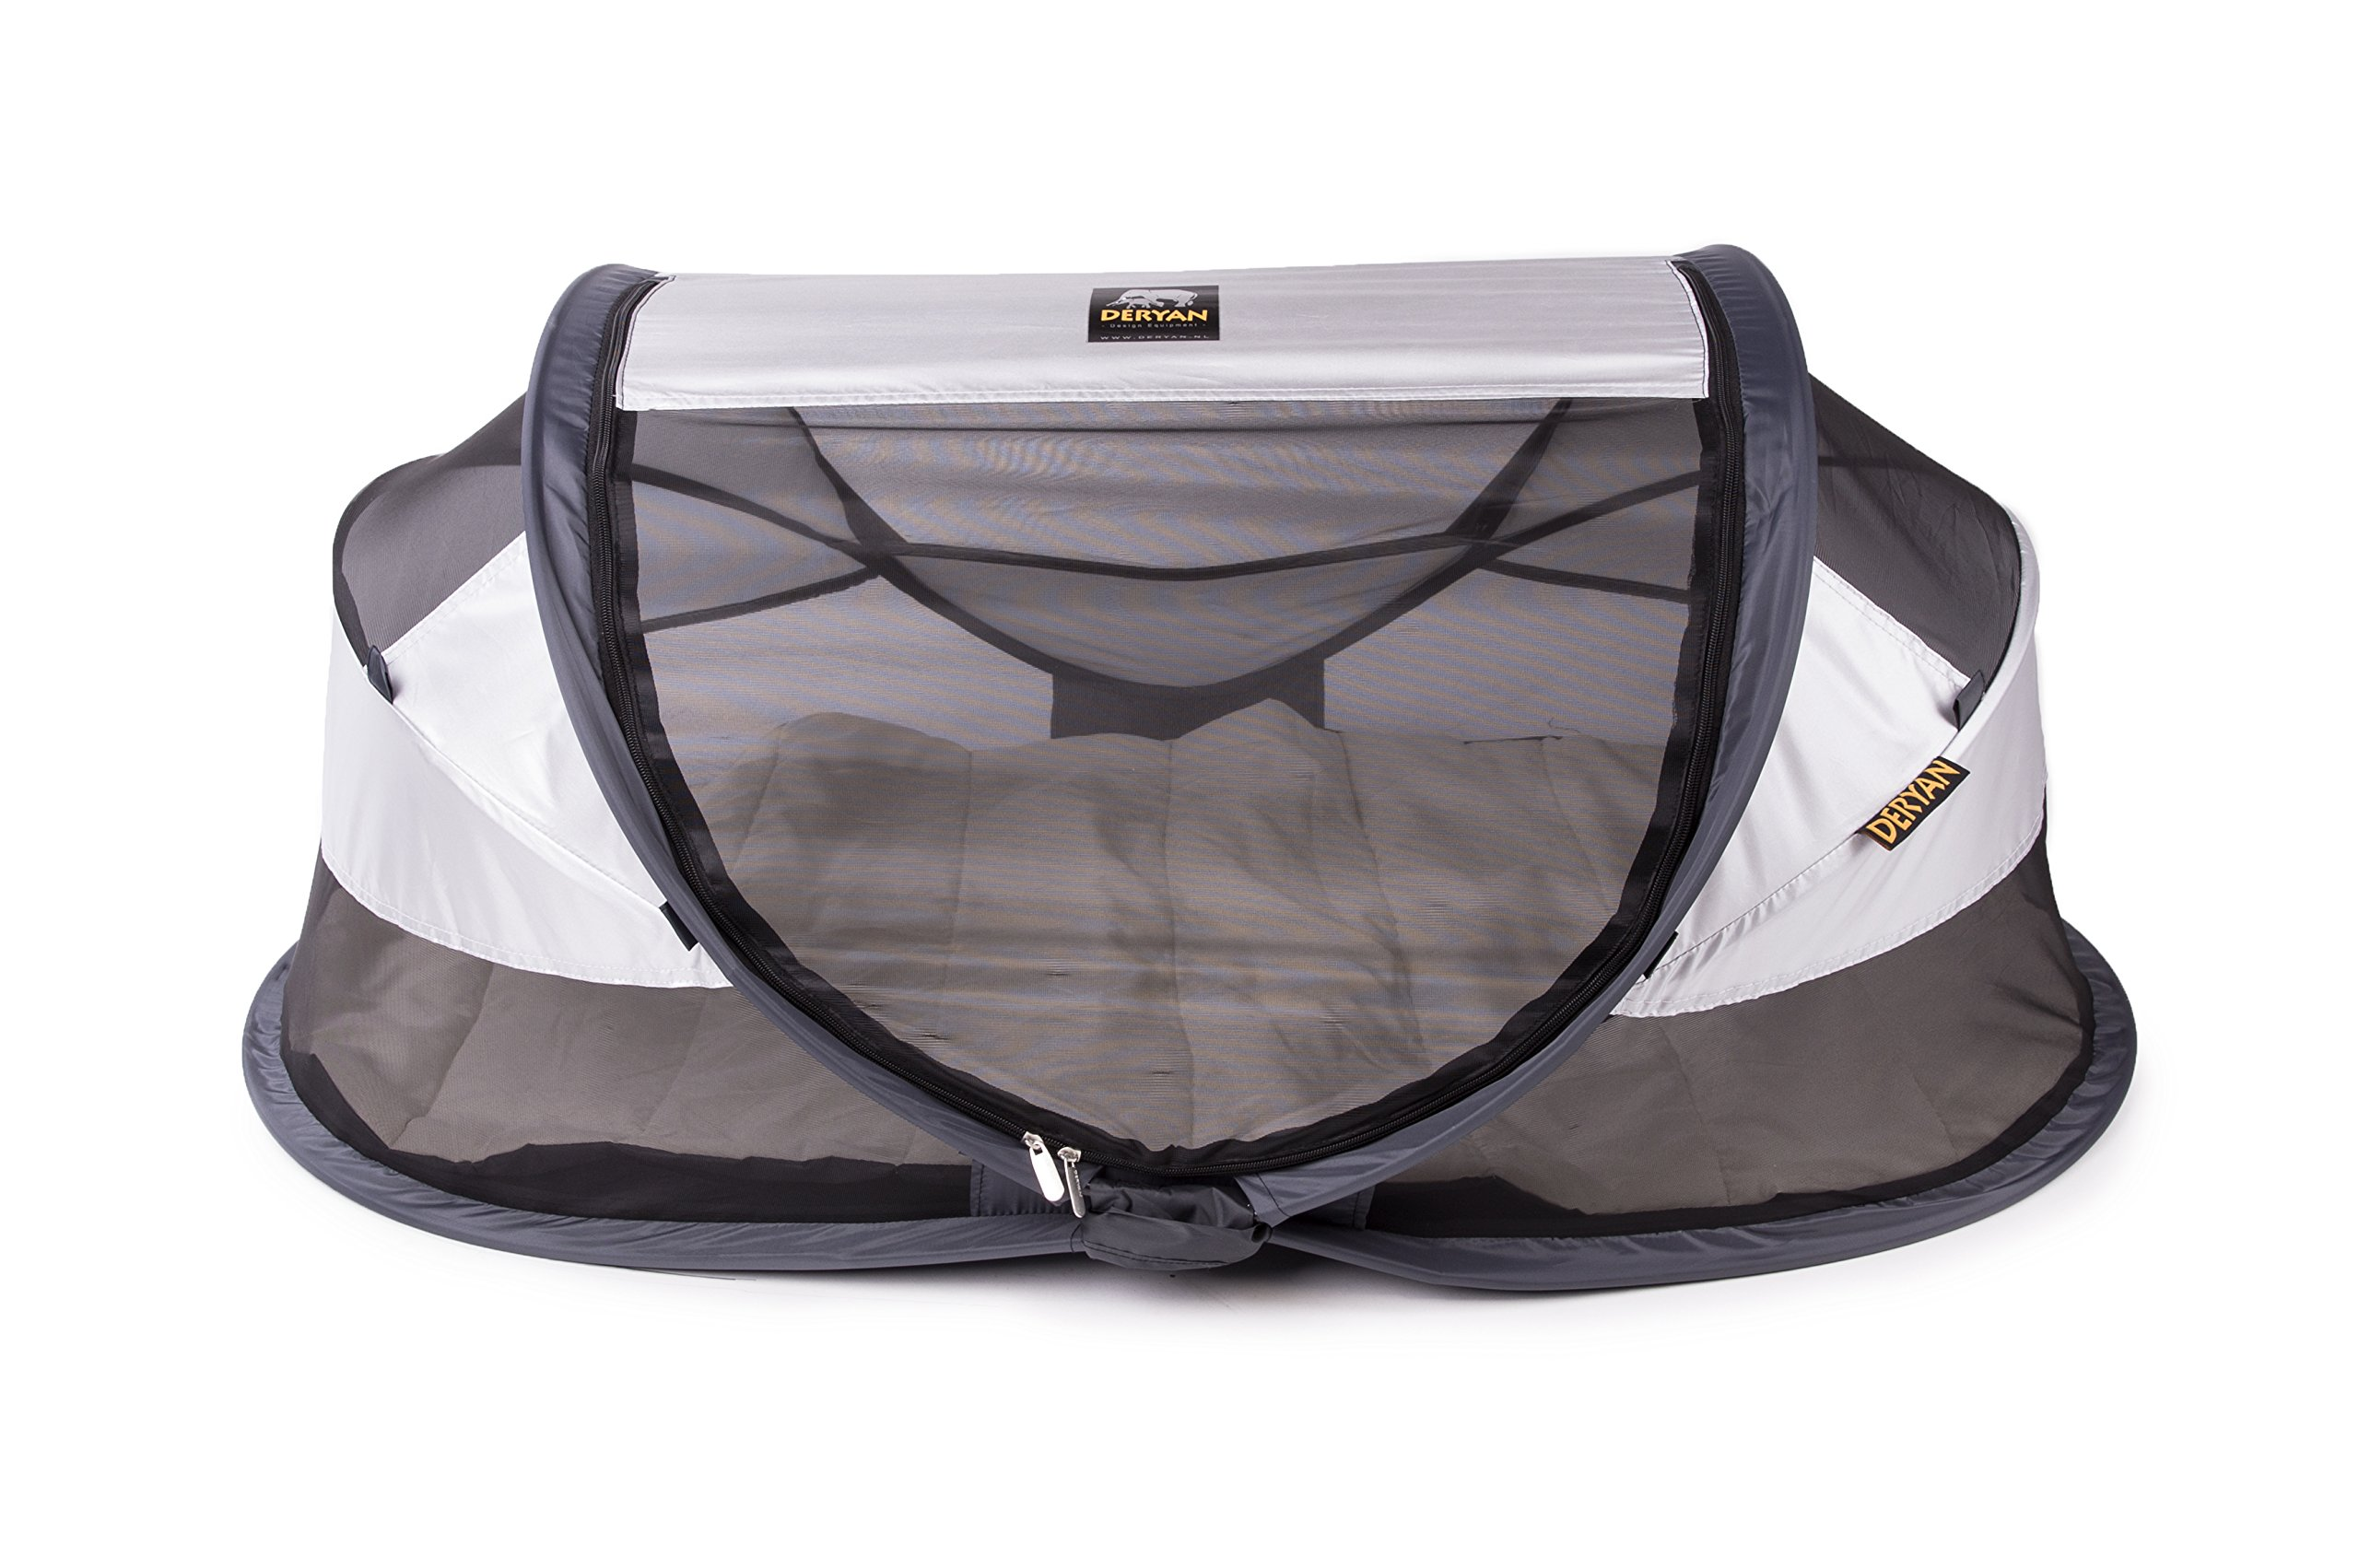 Deryan travel cot / travel cot Baby Luxe travel tent including sleeping mat, self-inflatable air mattress and carrying bag with pop-up built within 2 seconds, Silver Deryan 50% UV Protection and flame retardant fabric Setup in 2 seconds and a anti-musquito net  1